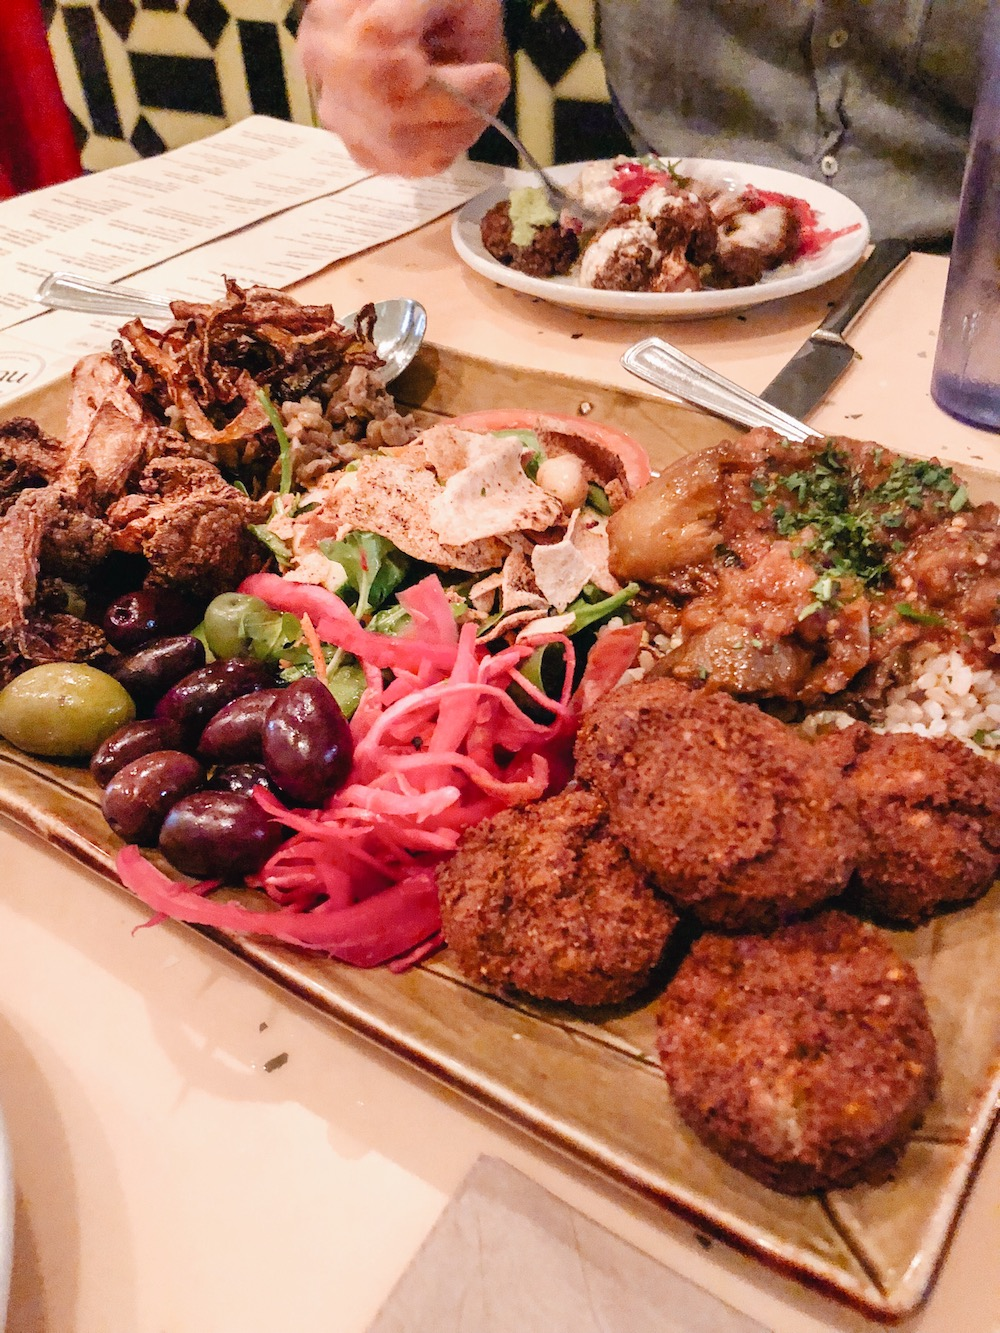 Second part of Le Feast from   NUBA   (the first is bread and dips)